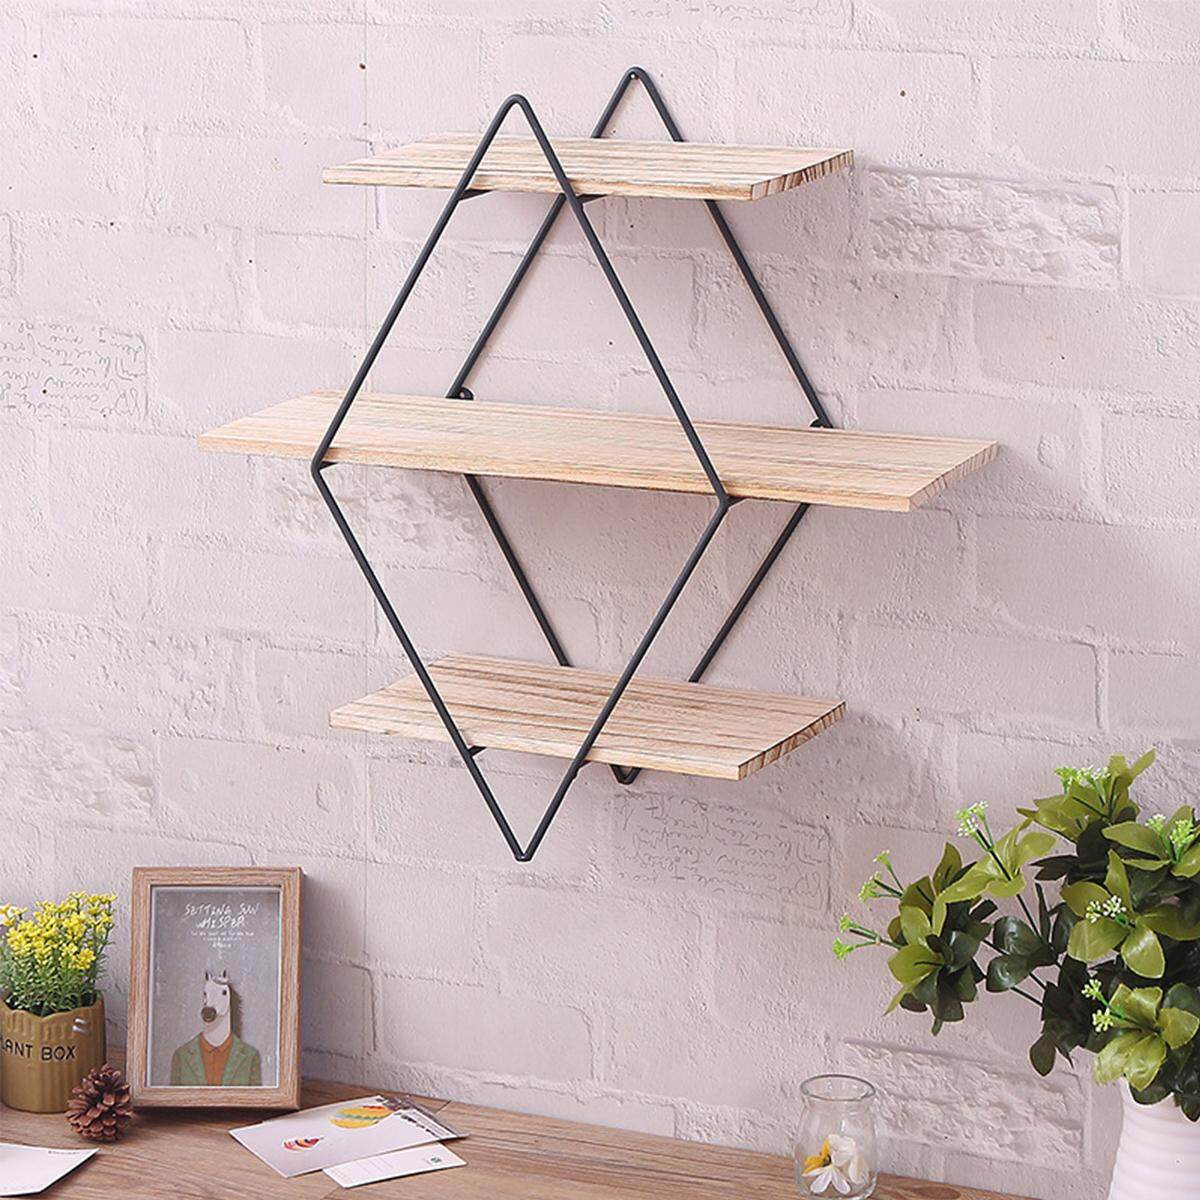 New Retro Industrial Style Rhombus Wood Metal Wall Shelf Rack Storage Home Decor - intl